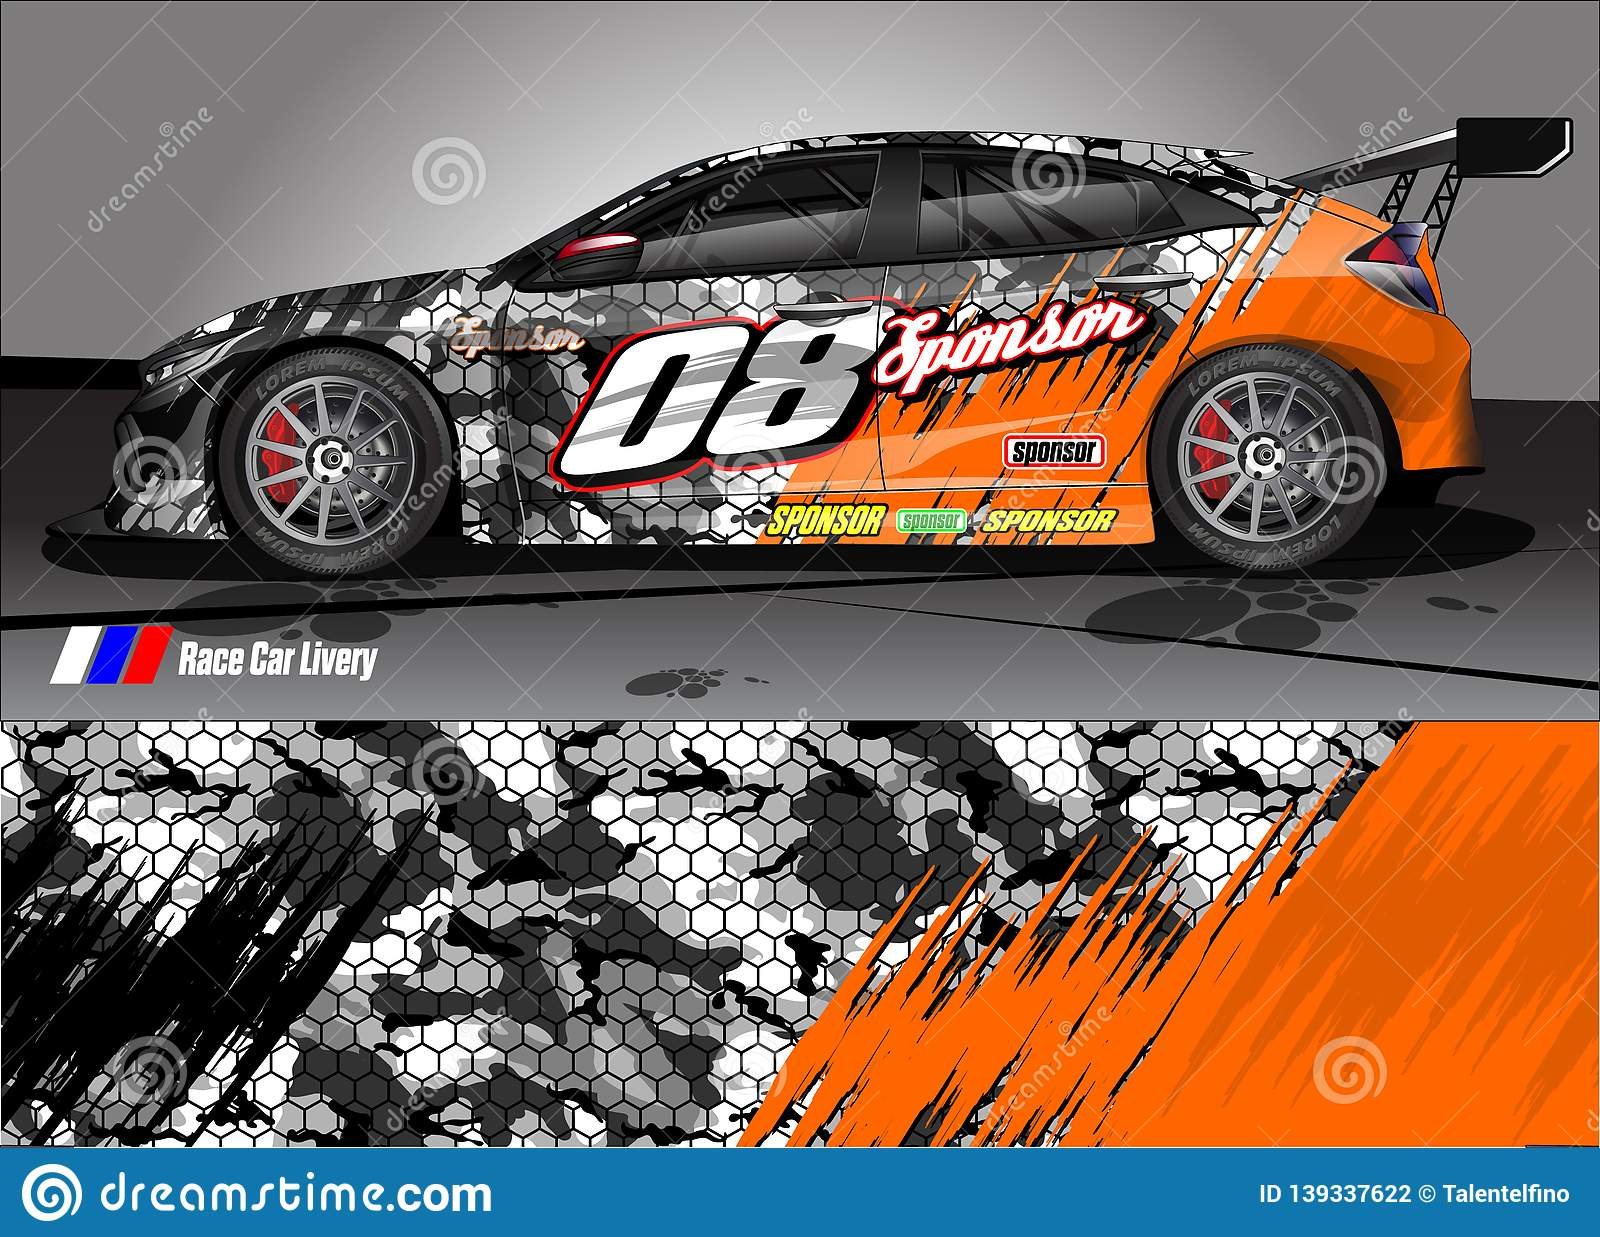 Race Car Livery Graphic Vector Abstract Grunge Background Design For Vehicle Vinyl Wrap And Car Branding Stock Vector Illustration Of Flames Graphics 139337622